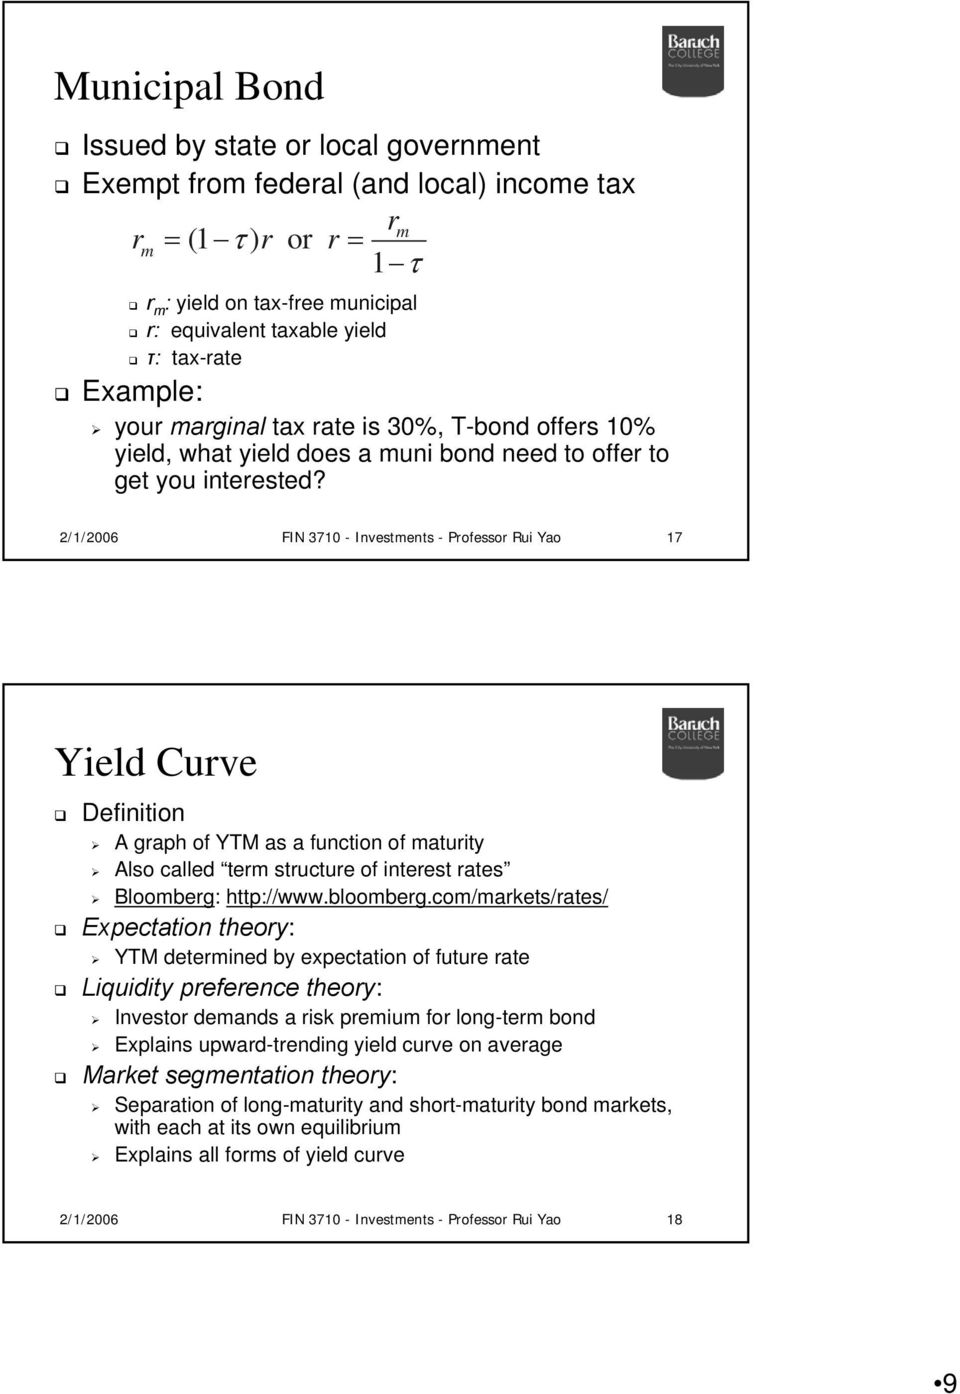 2/1/2006 FIN 3710 - Invesmens - Professor Rui Yao 17 Yield Curve Definiion A graph of YM as a funcion of mauriy Also called erm srucure of ineres raes Bloomberg: hp://www.bloomberg.